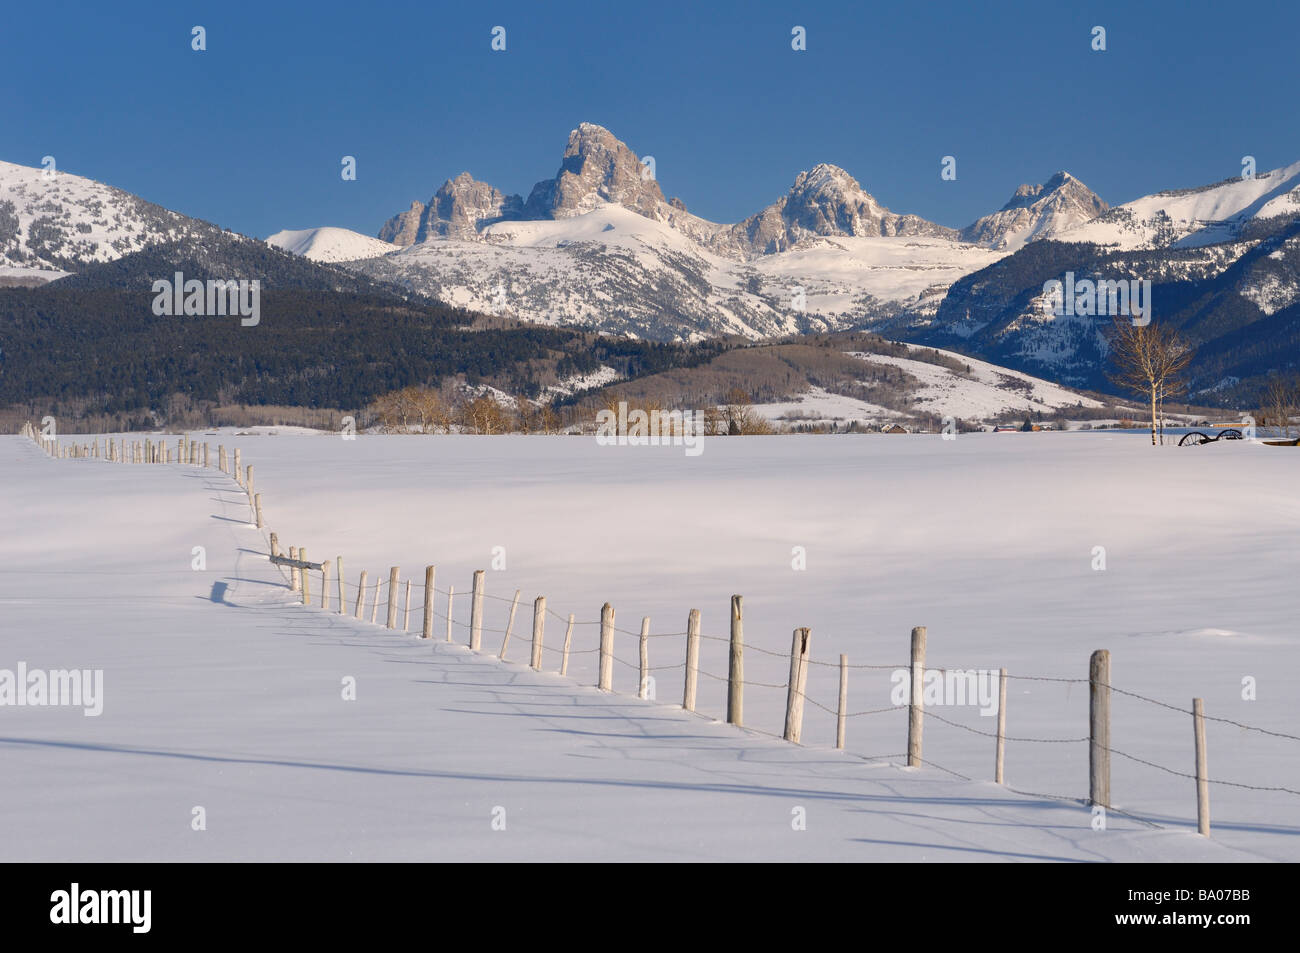 Mount Owen Grand Teton Middle Teton and South Teton in winter from Idaho with fence in snow covered field - Stock Image